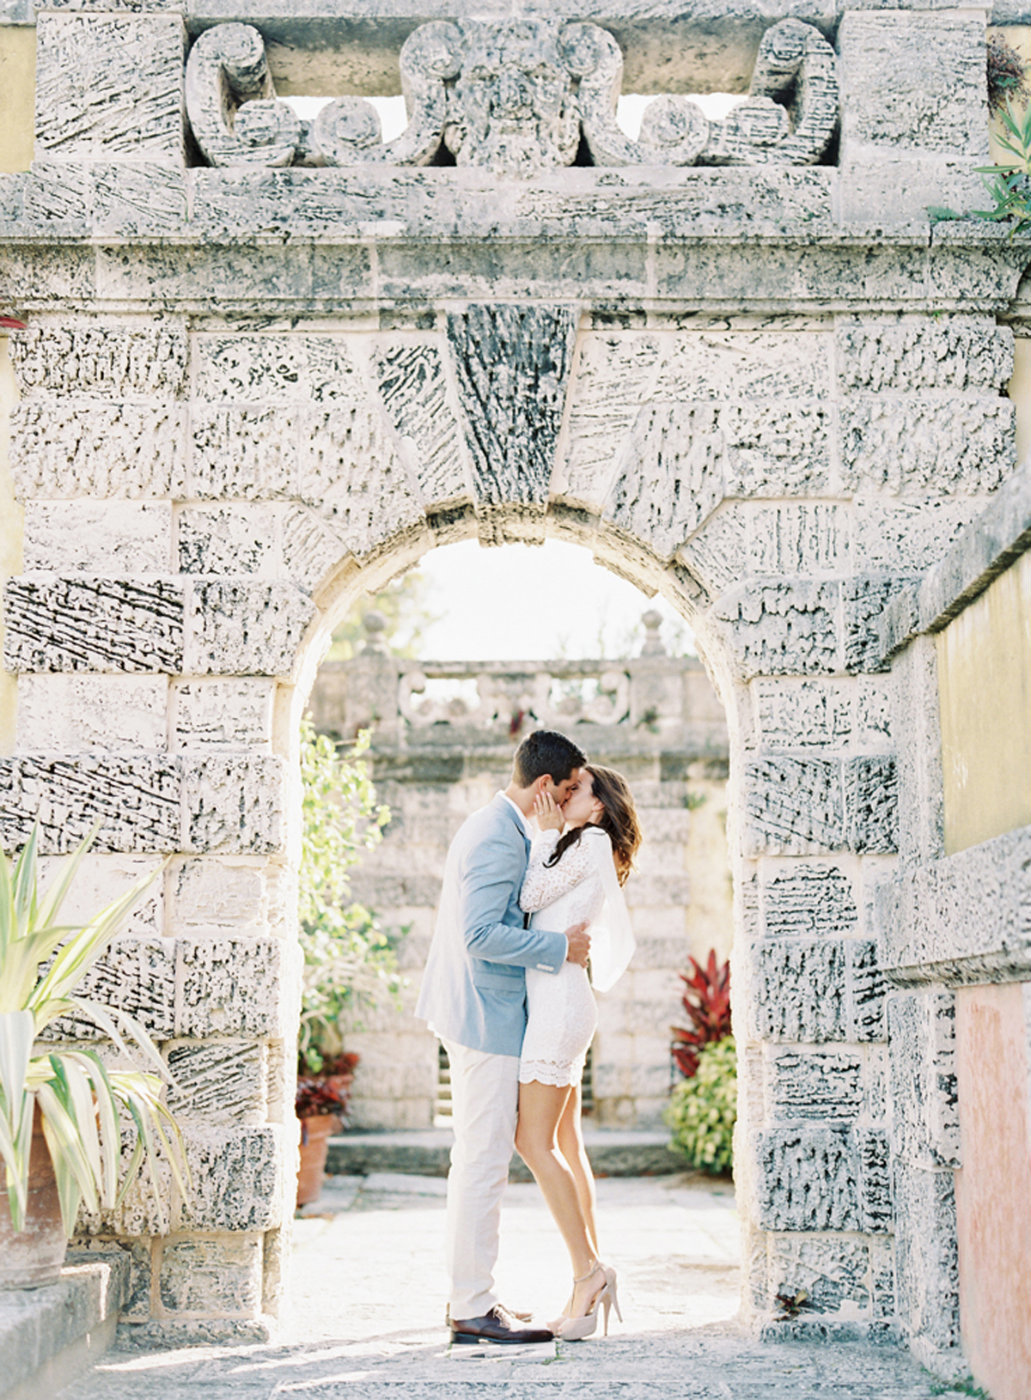 kayla_jon_vizcaya_sailboat_engagement_melanie_gabrielle_photography_191